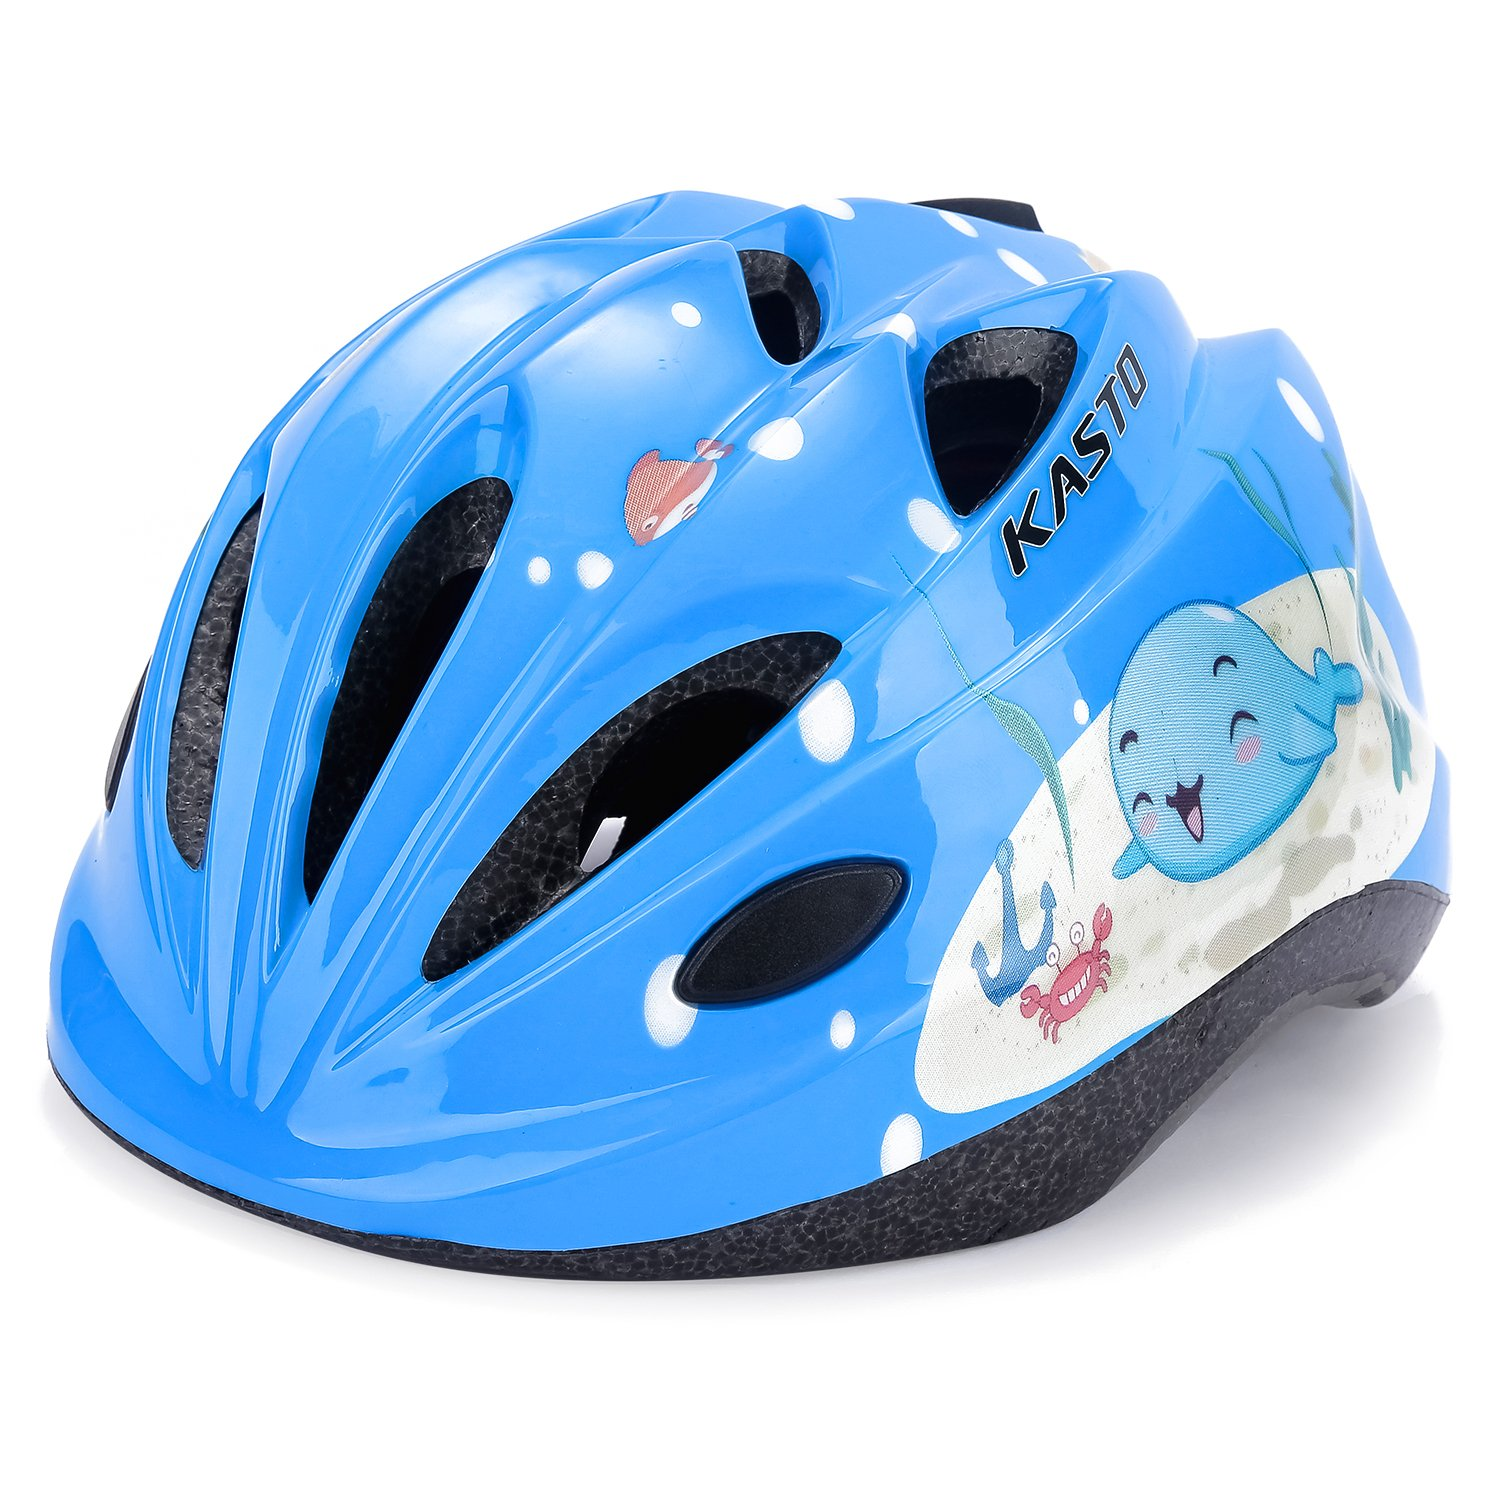 EEDAN Kids Bike Helmet - Sports Protective Gear for Skateboard Scooter Roller Skate Cycling Helmets - Adjustable Comfortable from Toddler,Child,Youth Size with 3 to 10 Years Boys and Girls (Blue)